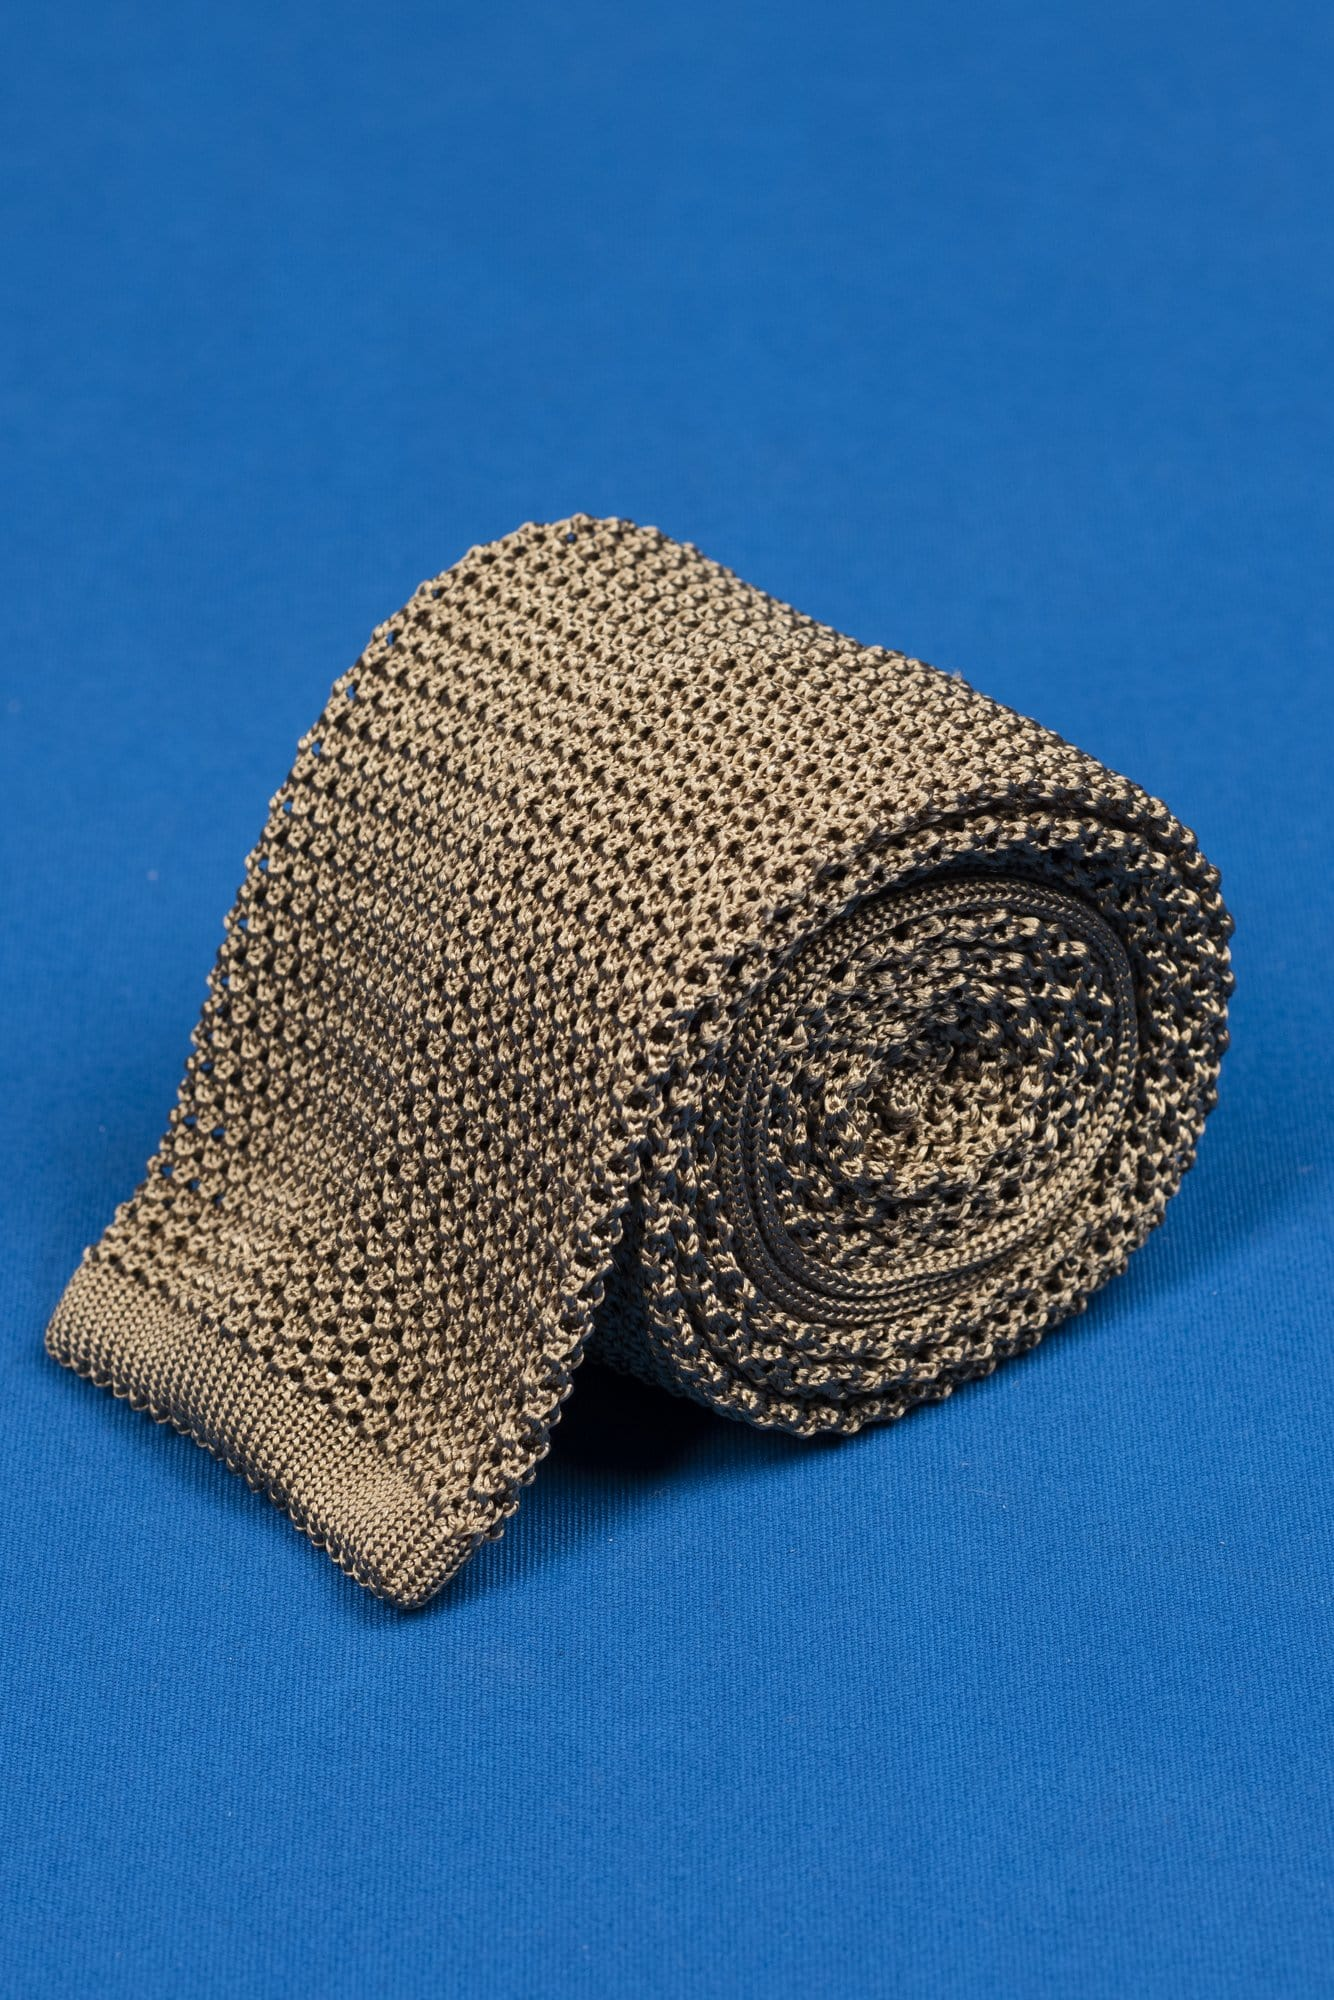 Taupe Knitted Tie - Grand Le Mar